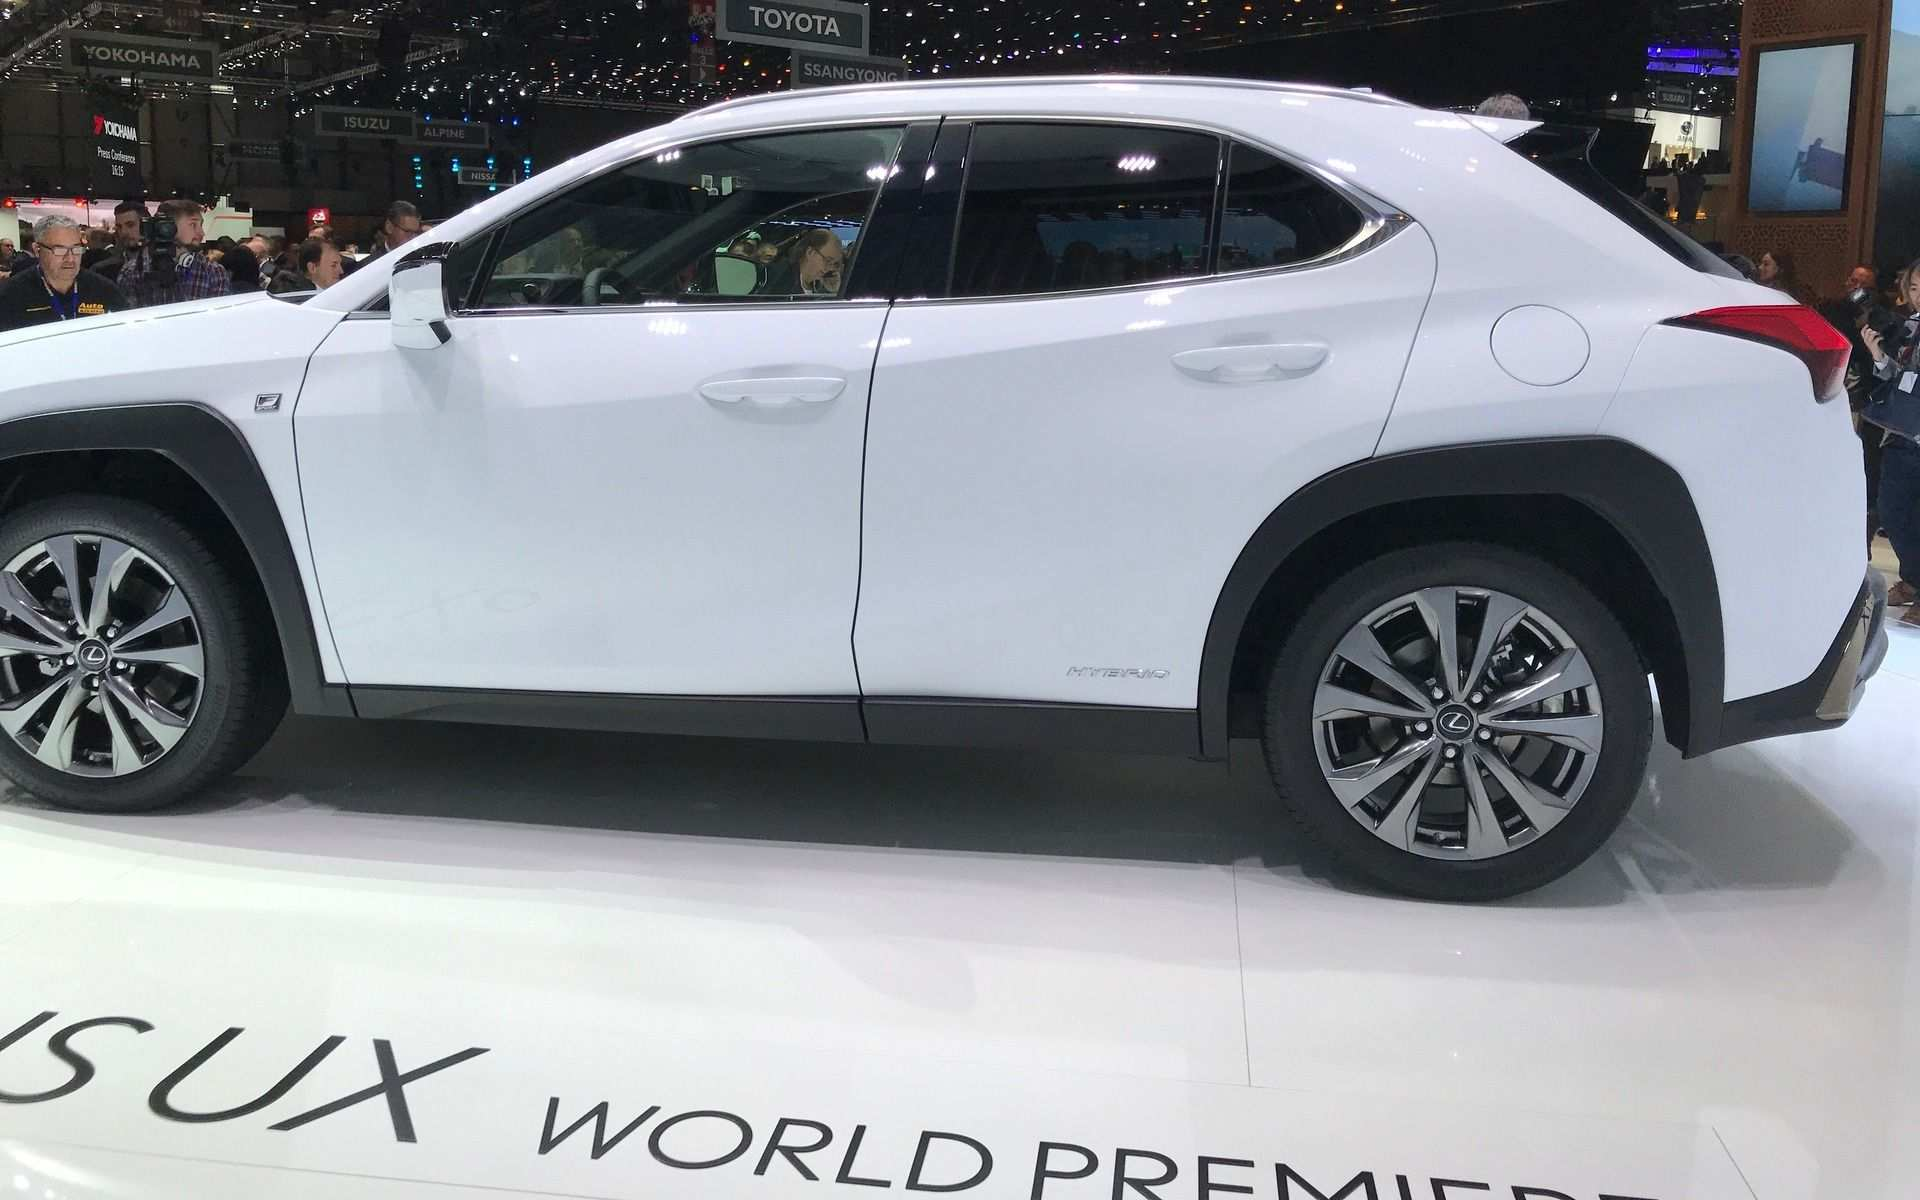 40 Great 2019 Lexus Ux Price Canada Price with 2019 Lexus Ux Price Canada